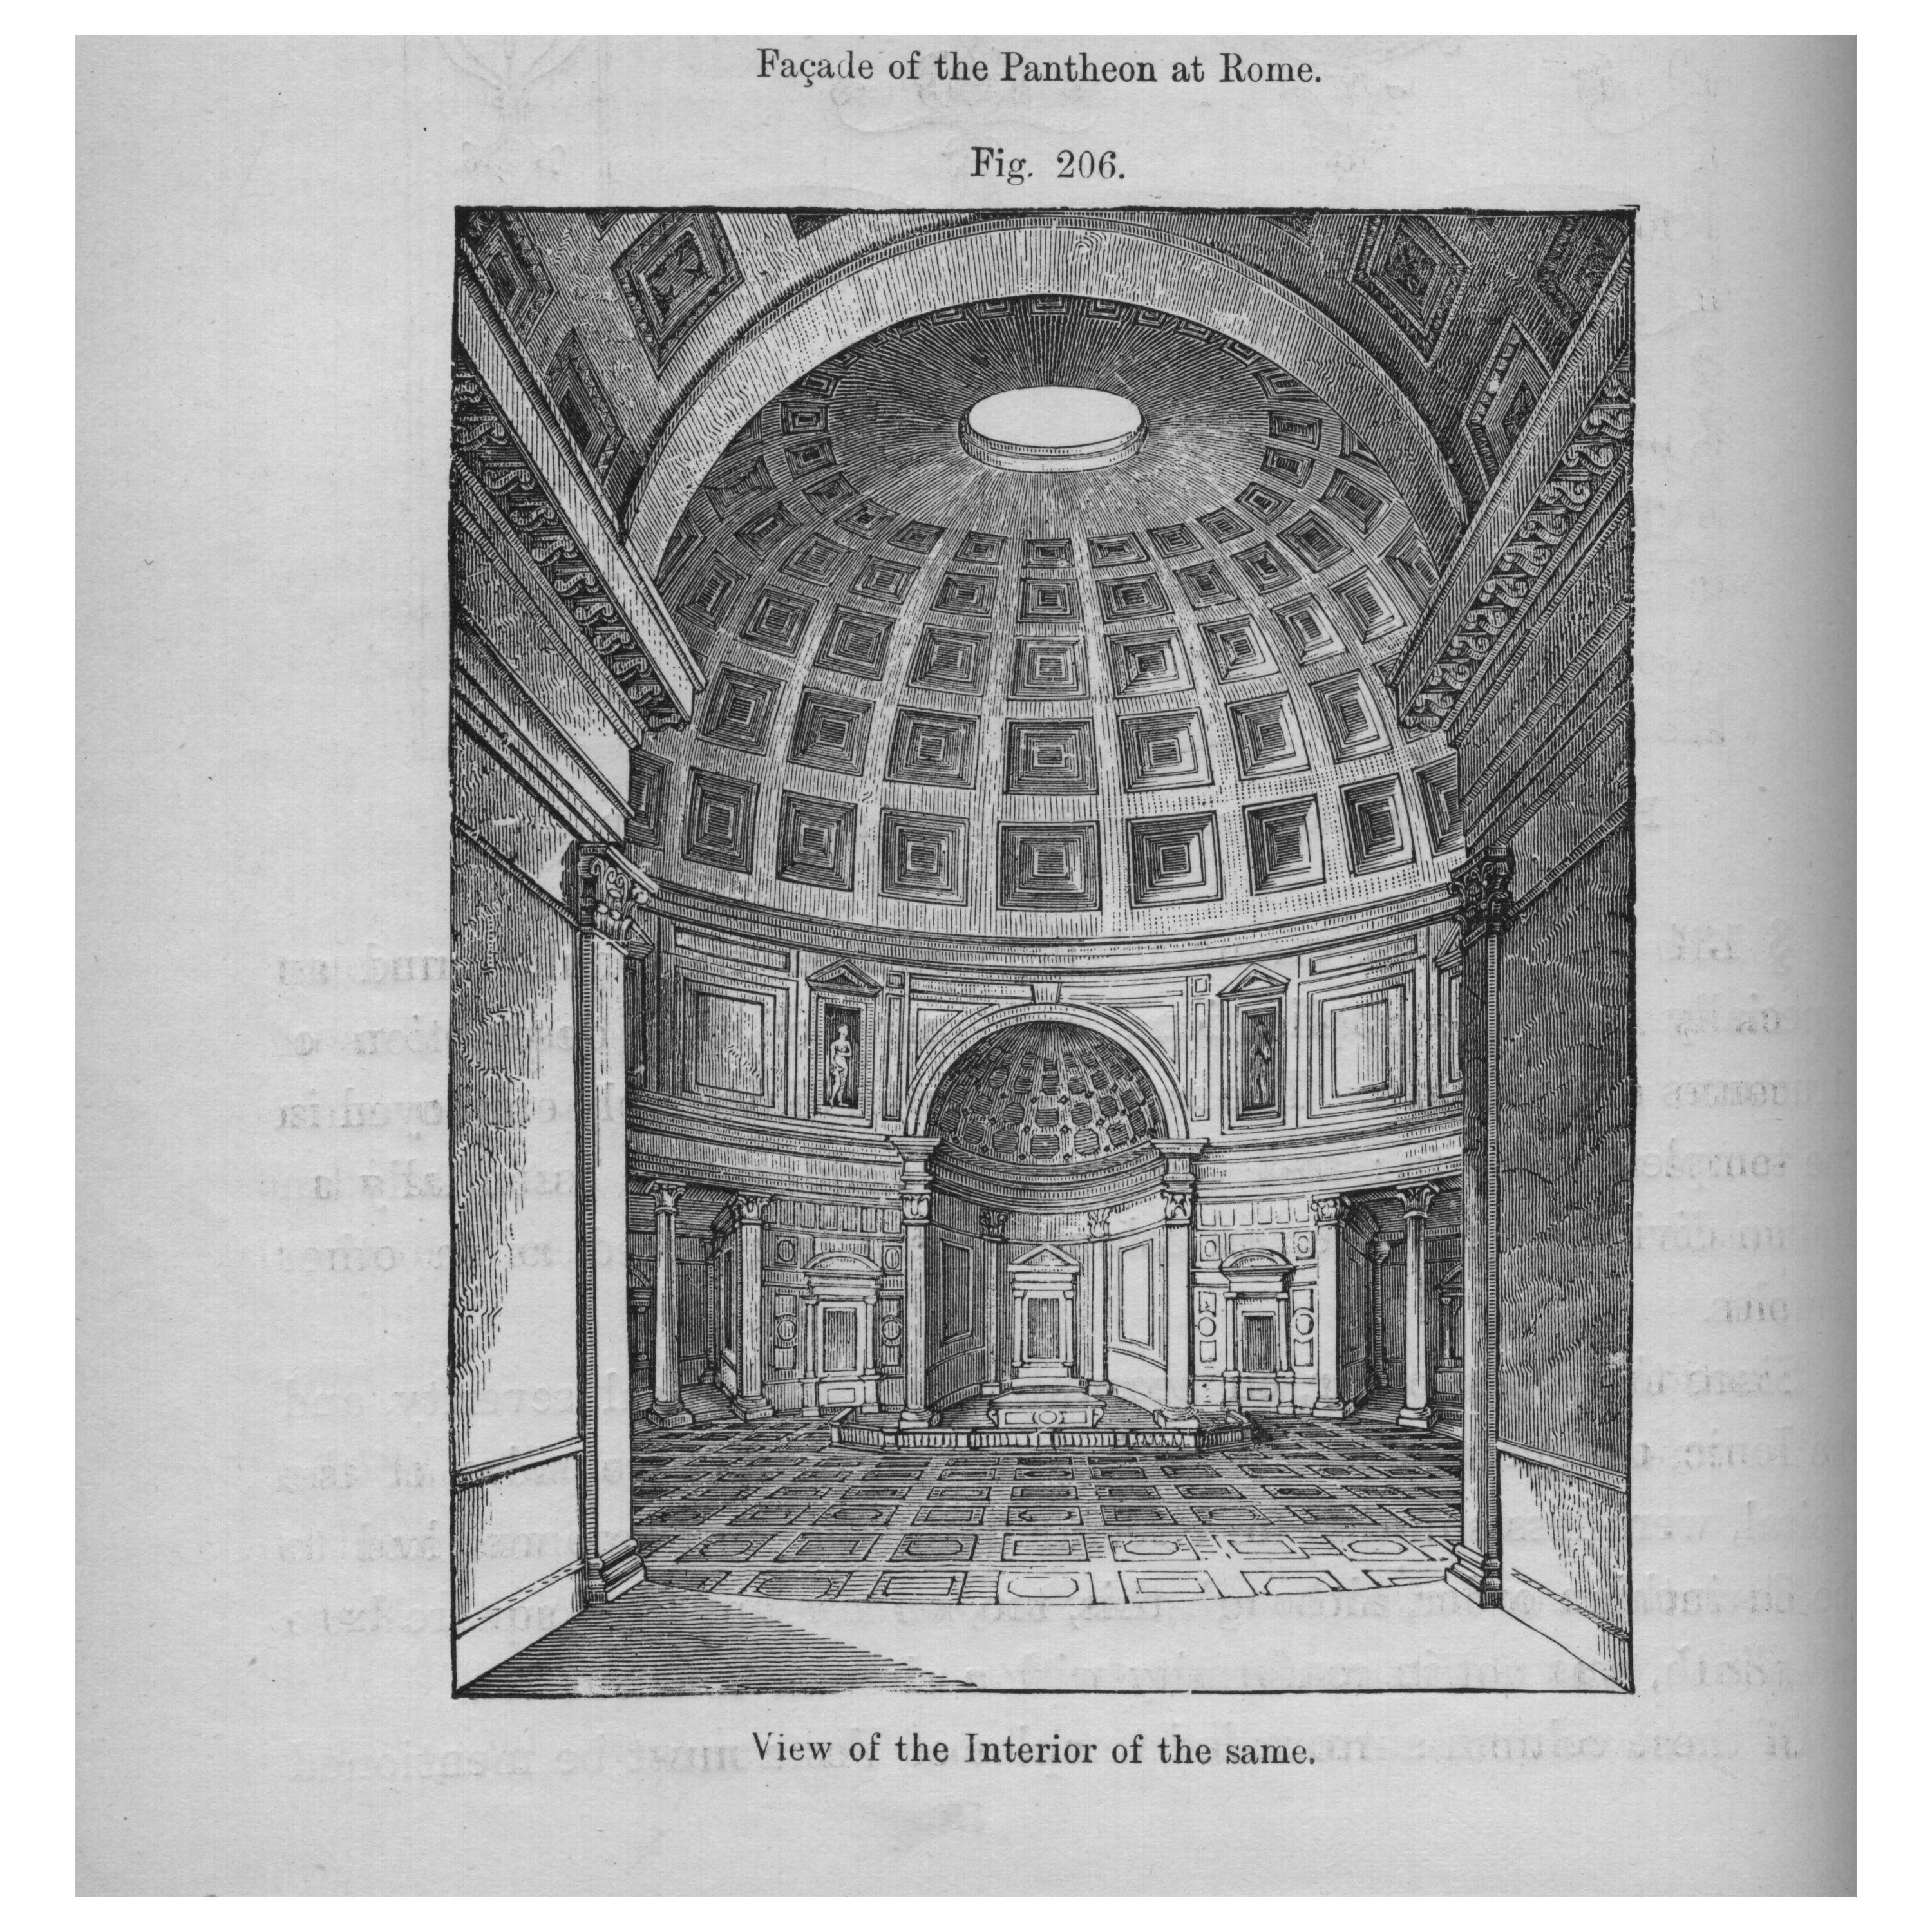 An architectural rendering of the apse from the Pantheon at Rome, with its coffered panel ceiling and intricate details, inspired the apse located at the north end of Stanley Field Hall. From A Handbook of Architectural Styles, 1809.